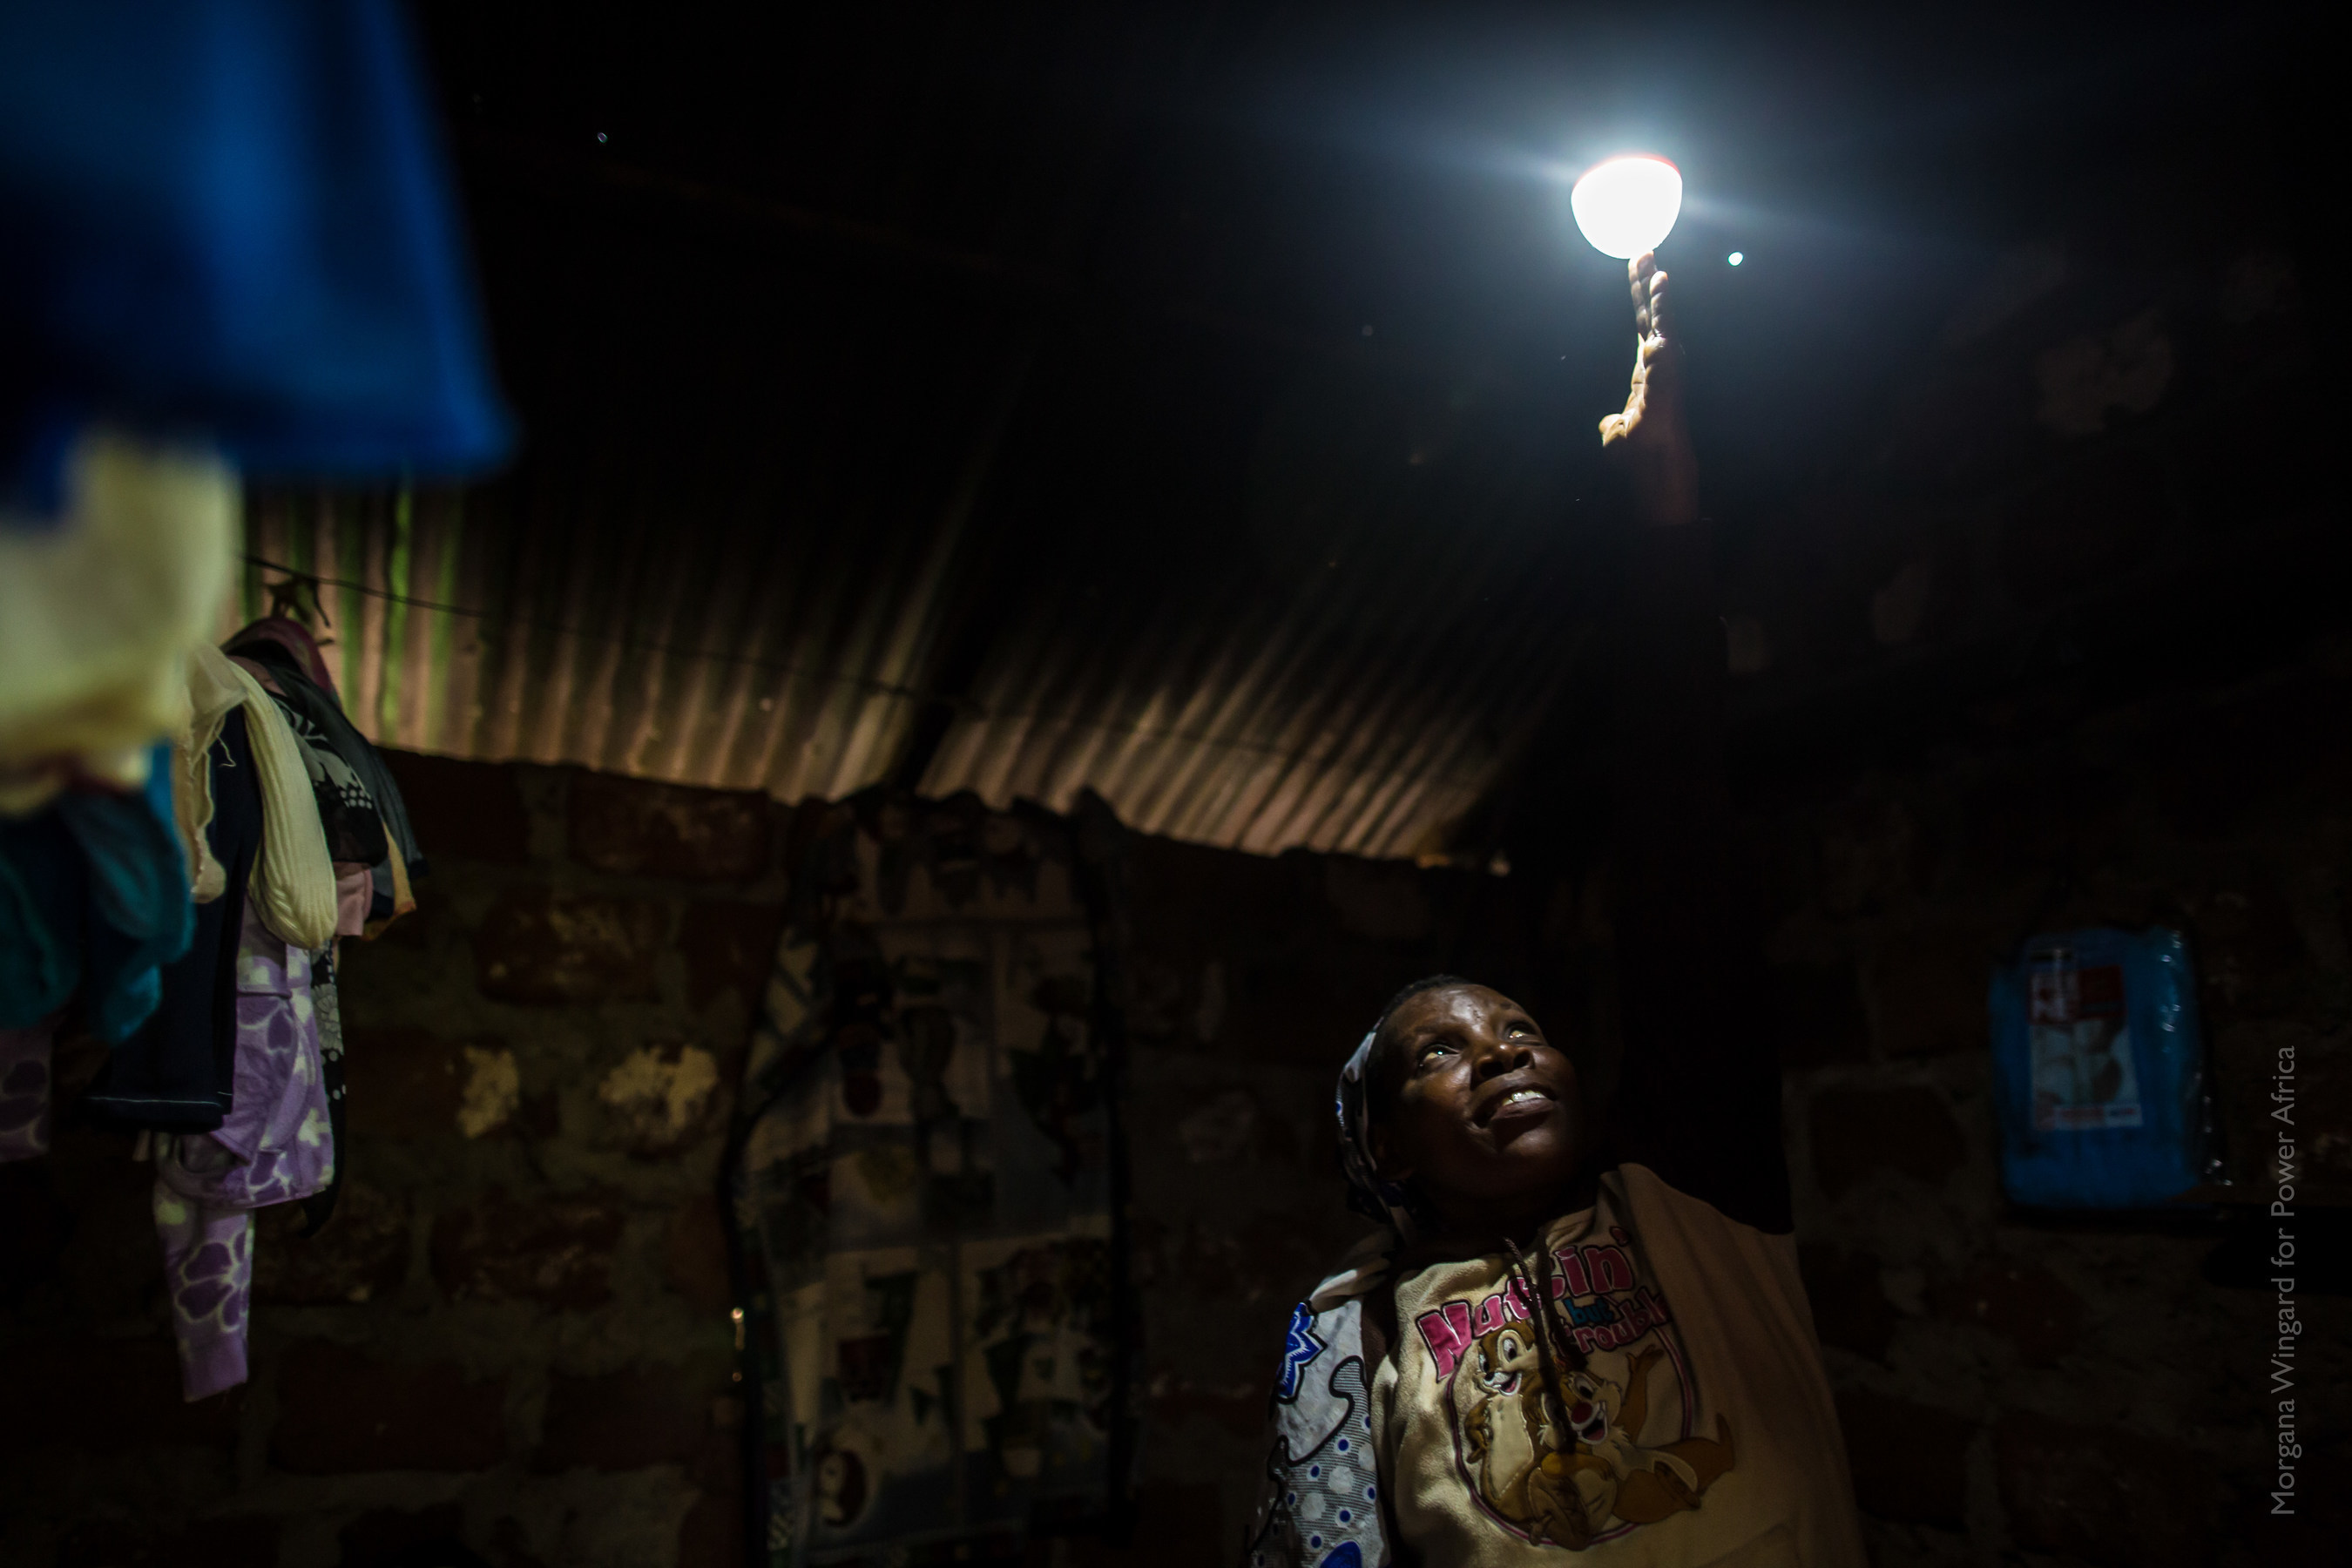 d.light expands its own PayGo financing service to partners around the world to increase energy options to the 2.3 billion people living without access to reliable power.